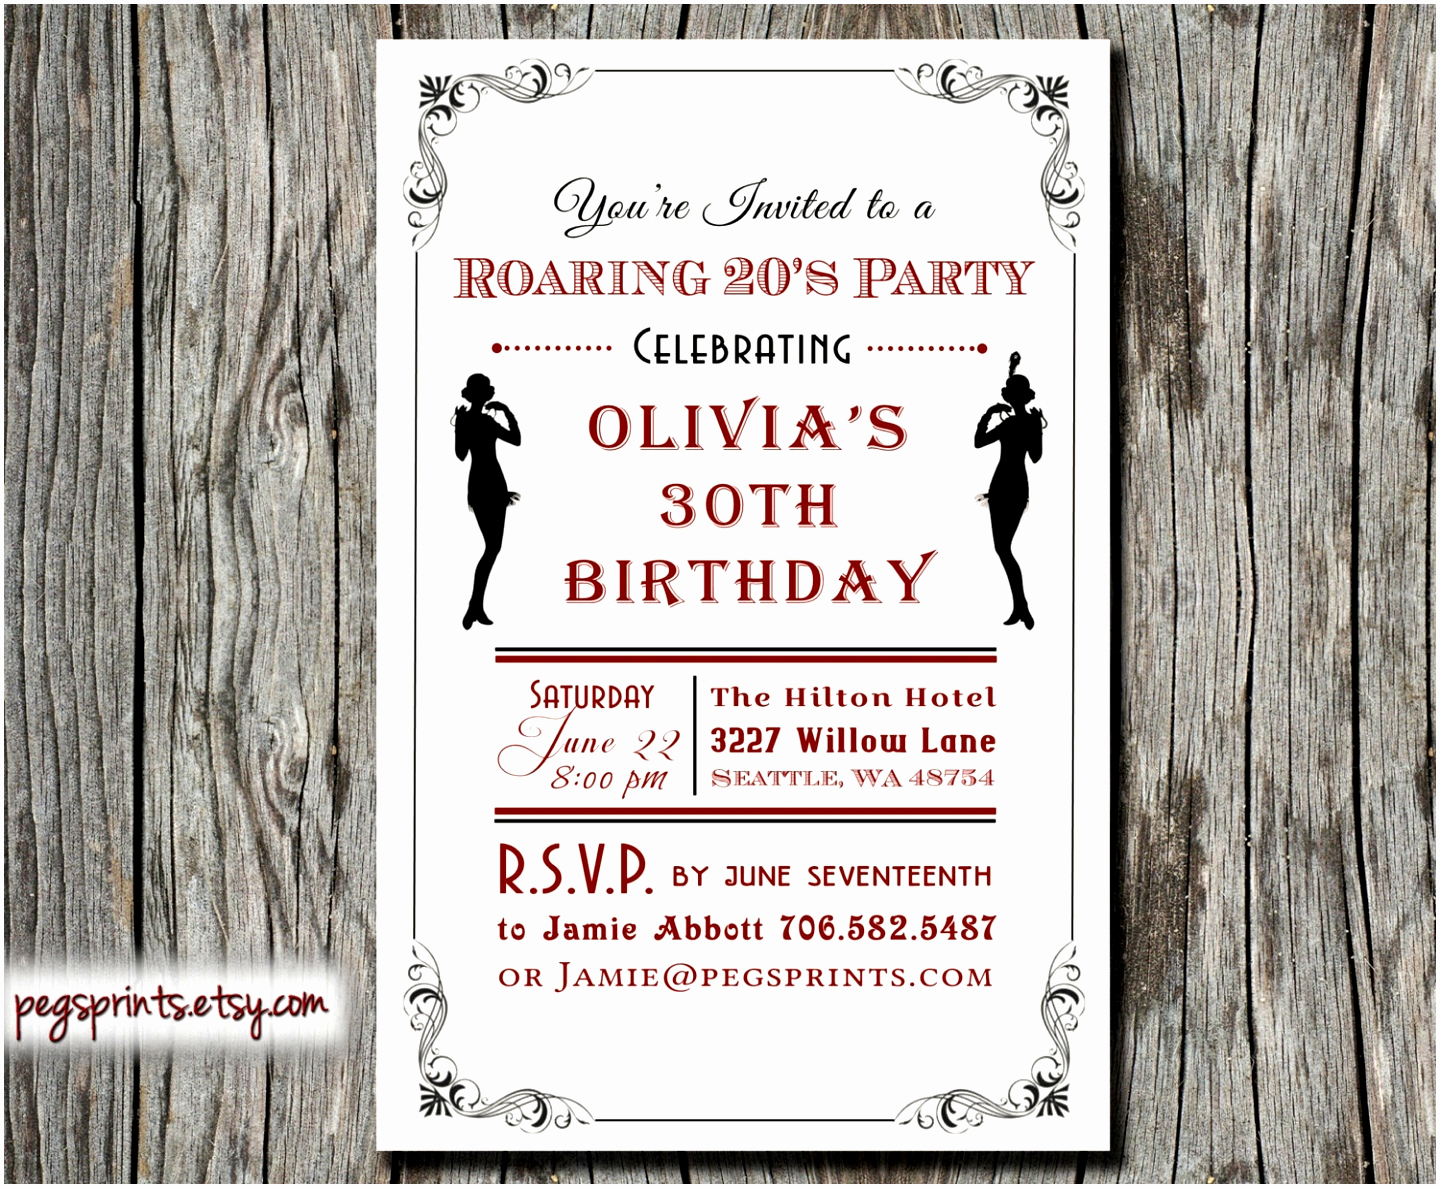 1920s Invitation Template Free Awesome 6 Roaring Twenties Invitation Template Lyeuw